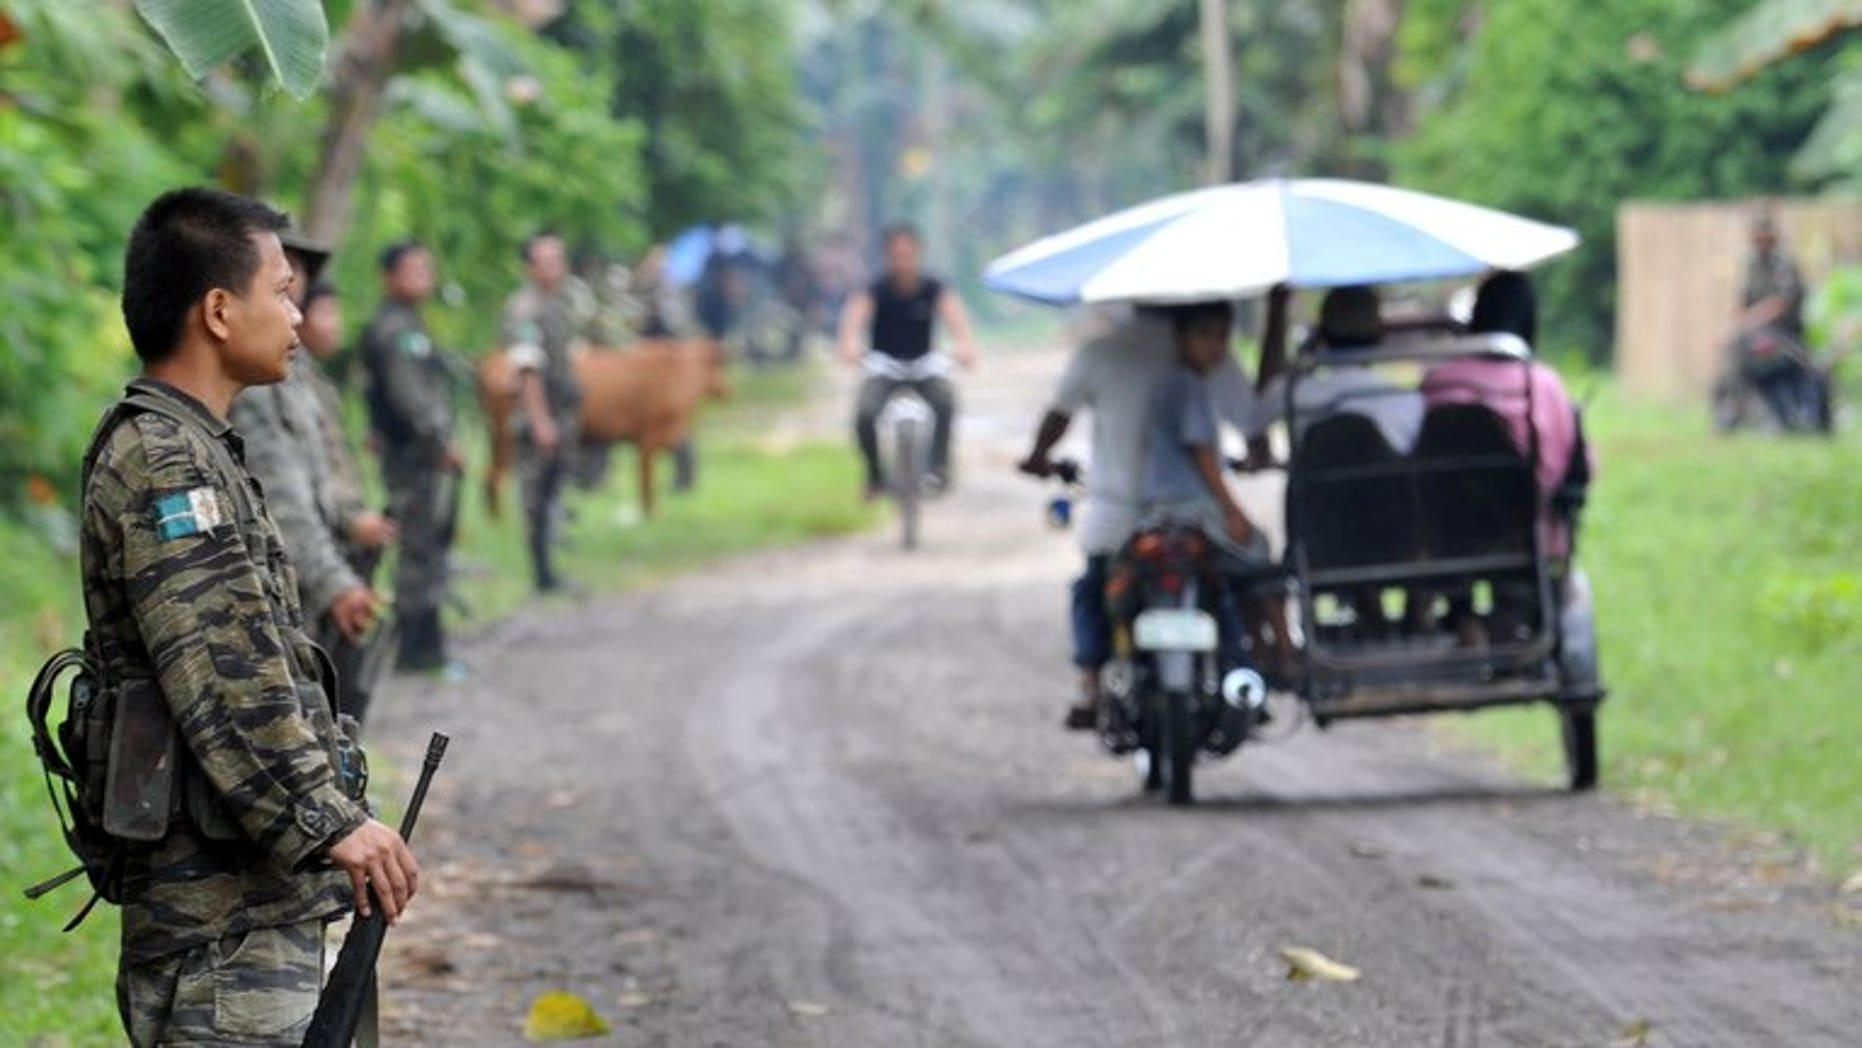 This file photo shows members of the southern Philippine rebel group, the Moro Islamic Liberation Front (MILF), lining a street as villagers pass by, in a town on Mindanao island, on September 19, 2009. The United States has warned Americans against travel to the southern Philippines just days after Australia and Canada issued similar advice.